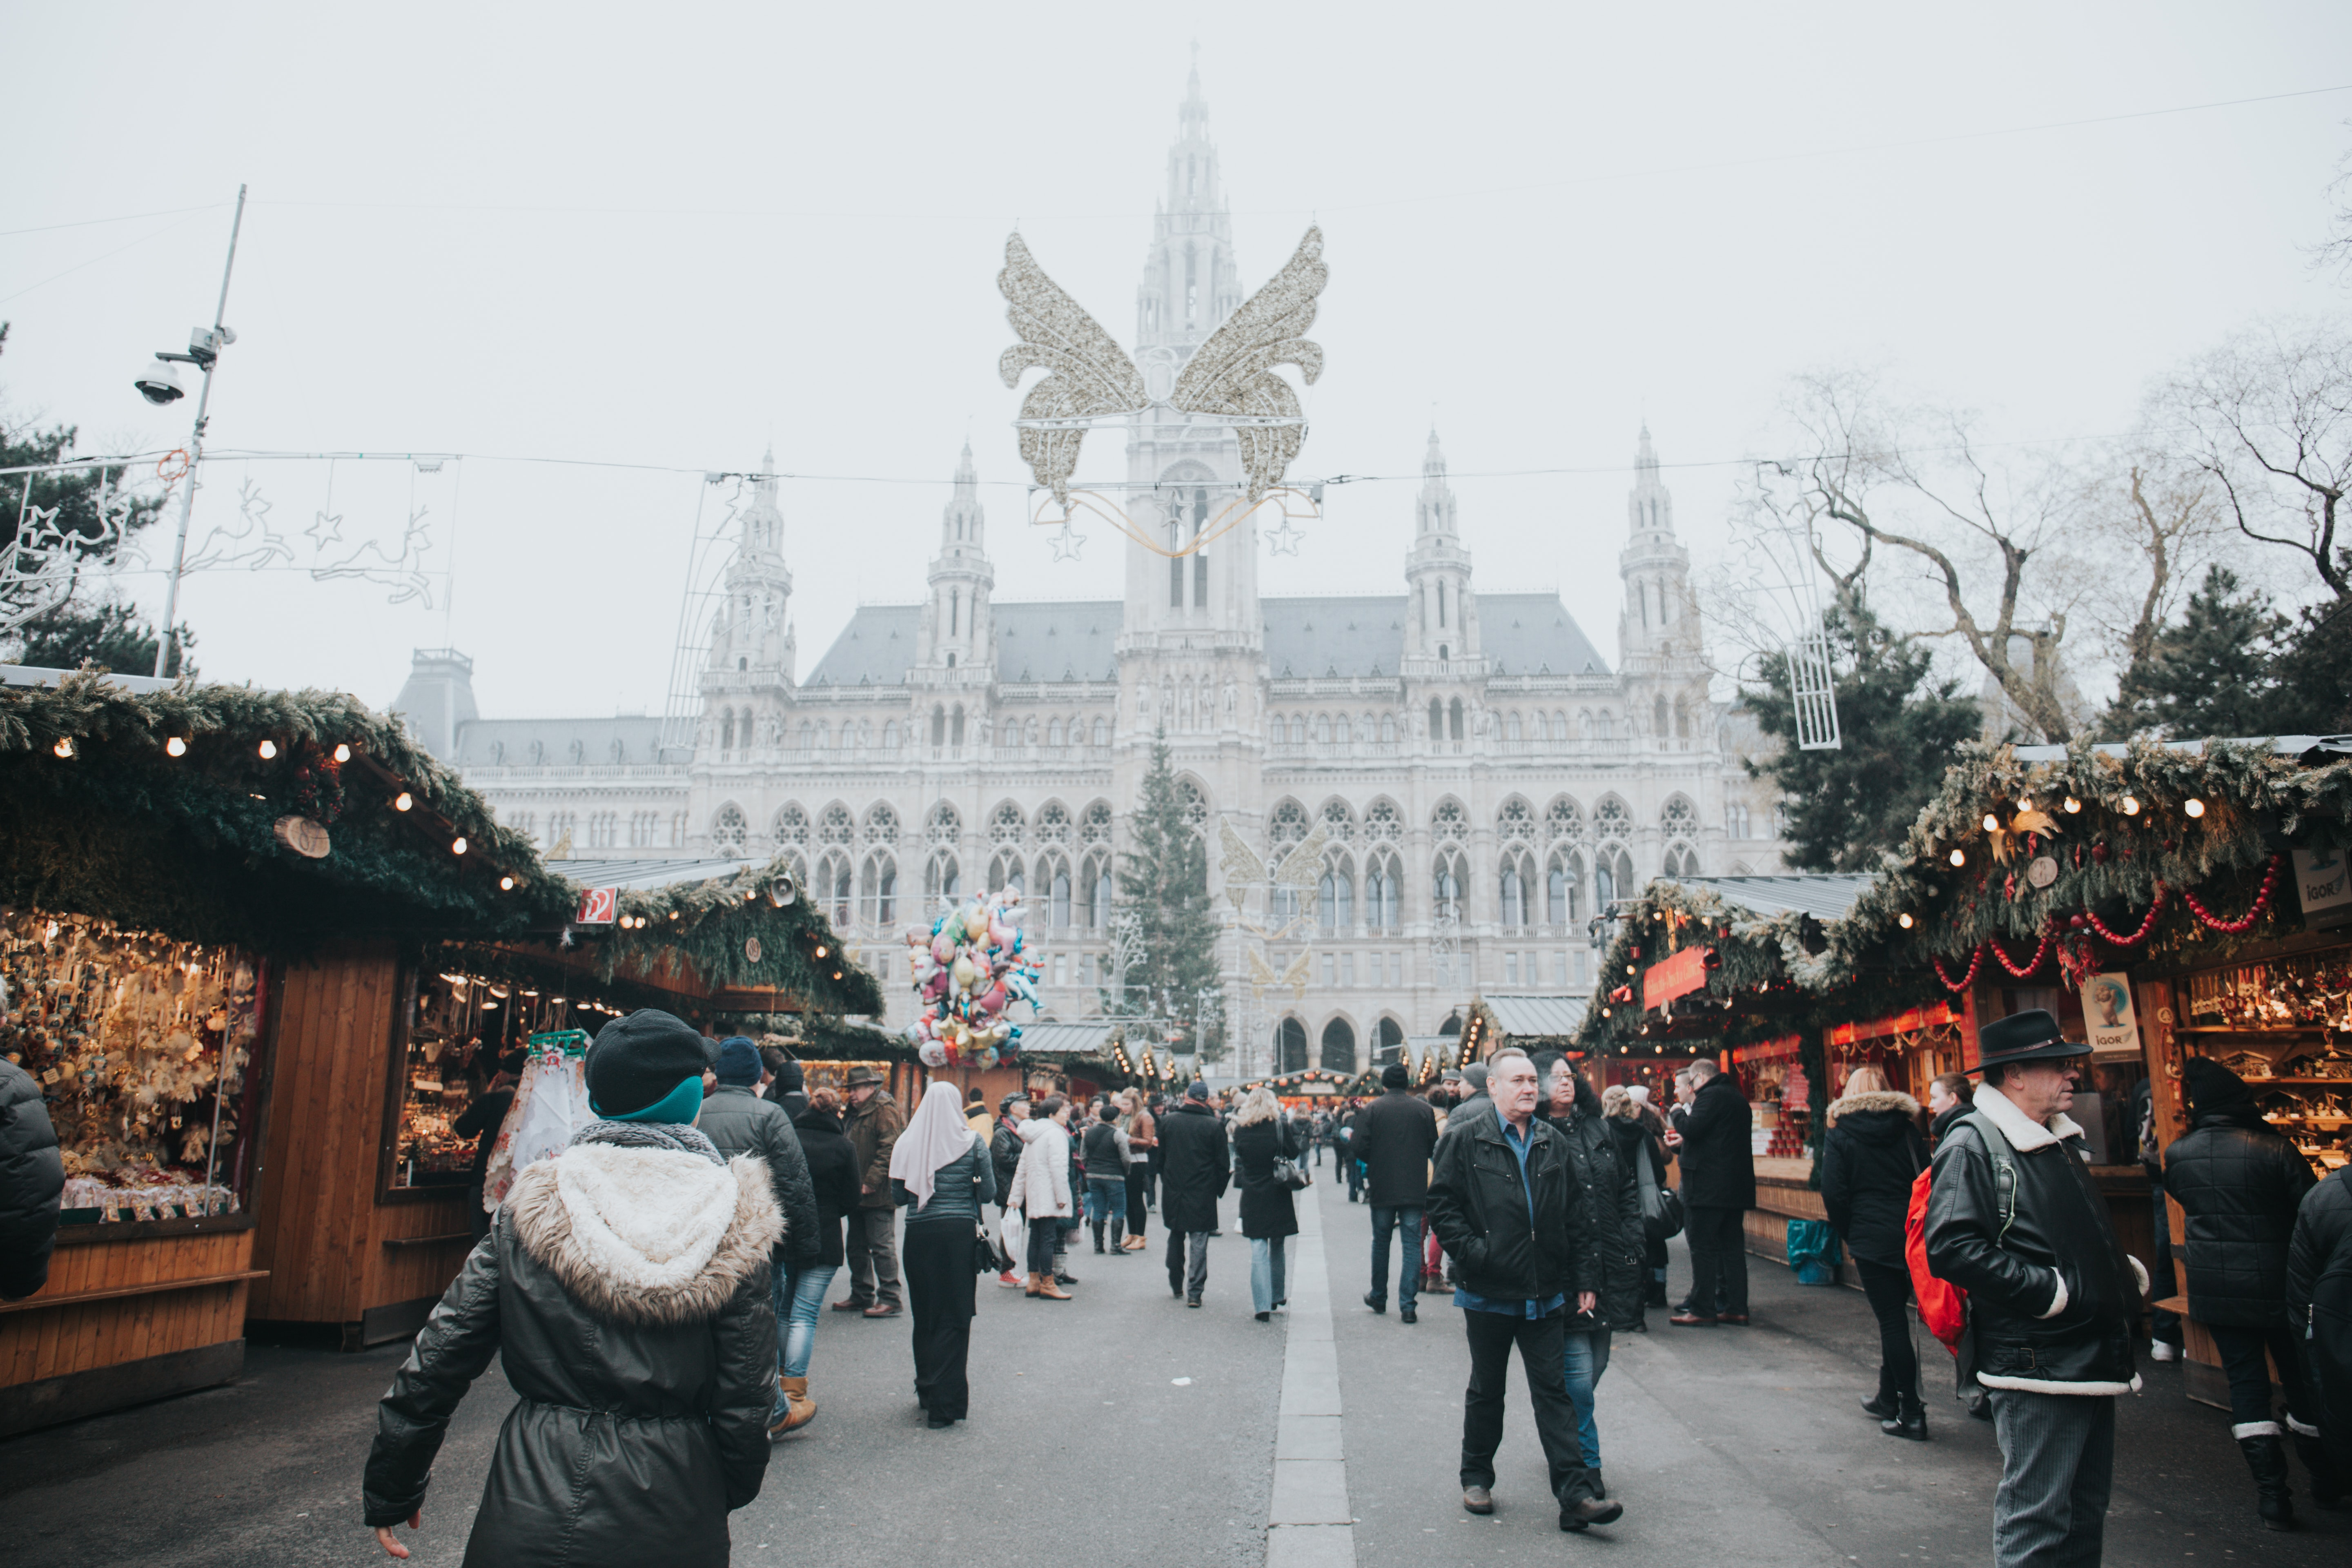 Visit Castles and Palaces, Best things to do in Austria in Winter